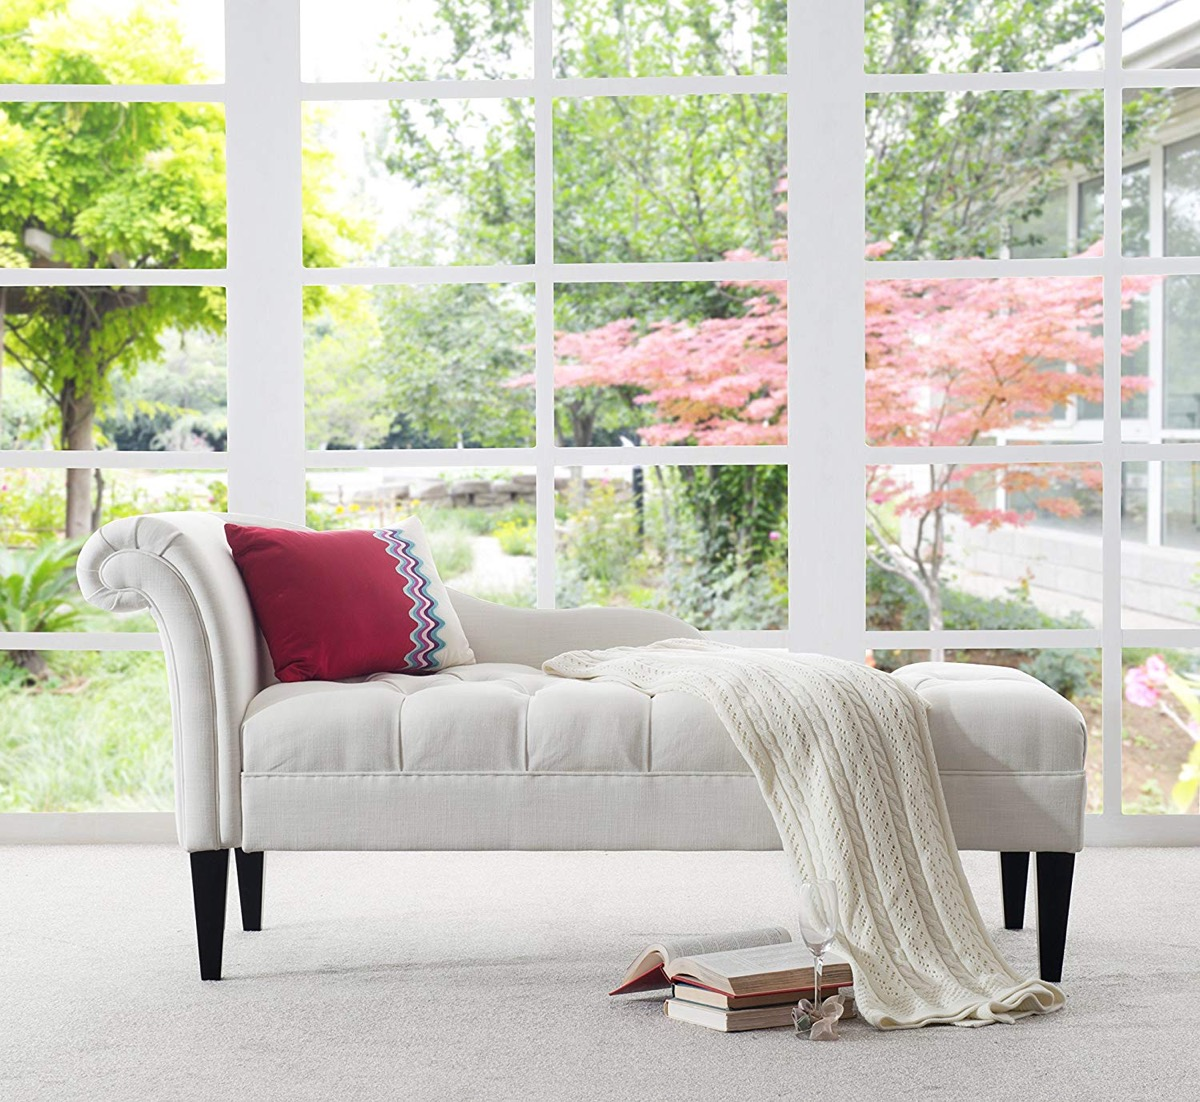 white-tufted-chaise-lounge-for-chic-modern-interior-furniture-themes